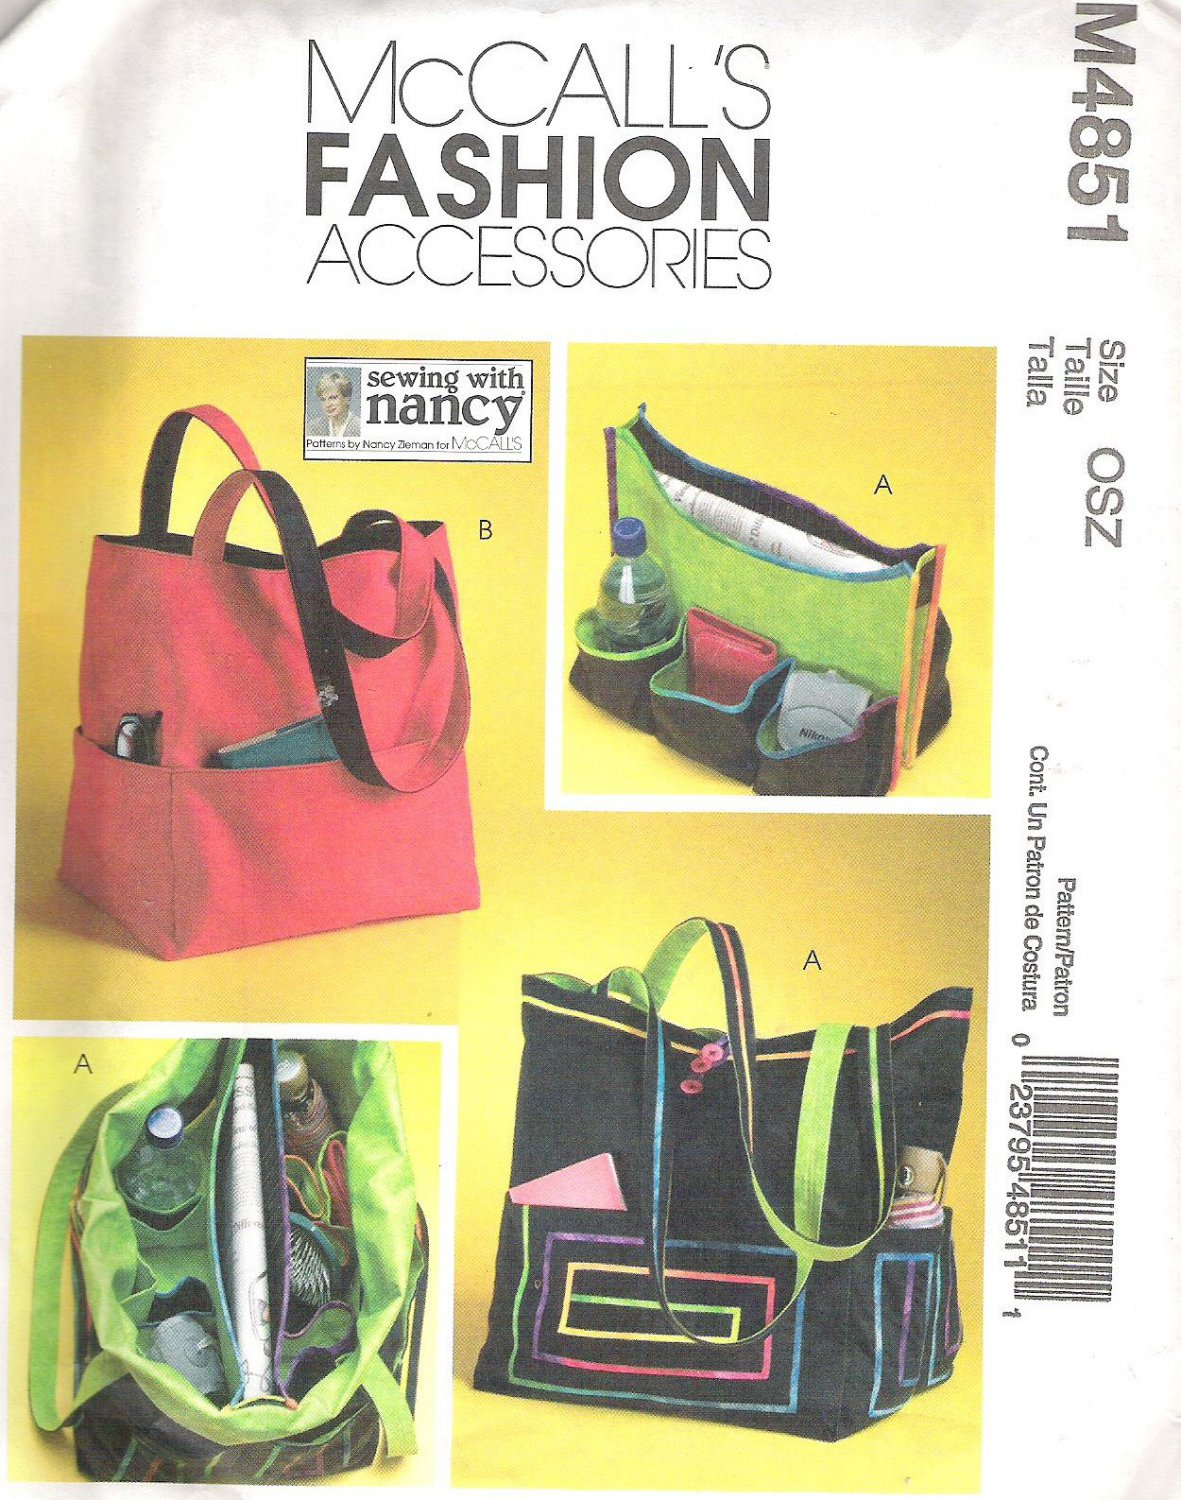 2005 McCalls 4851 Pattern Tote Bags with Detachable Organizer Partial Cut